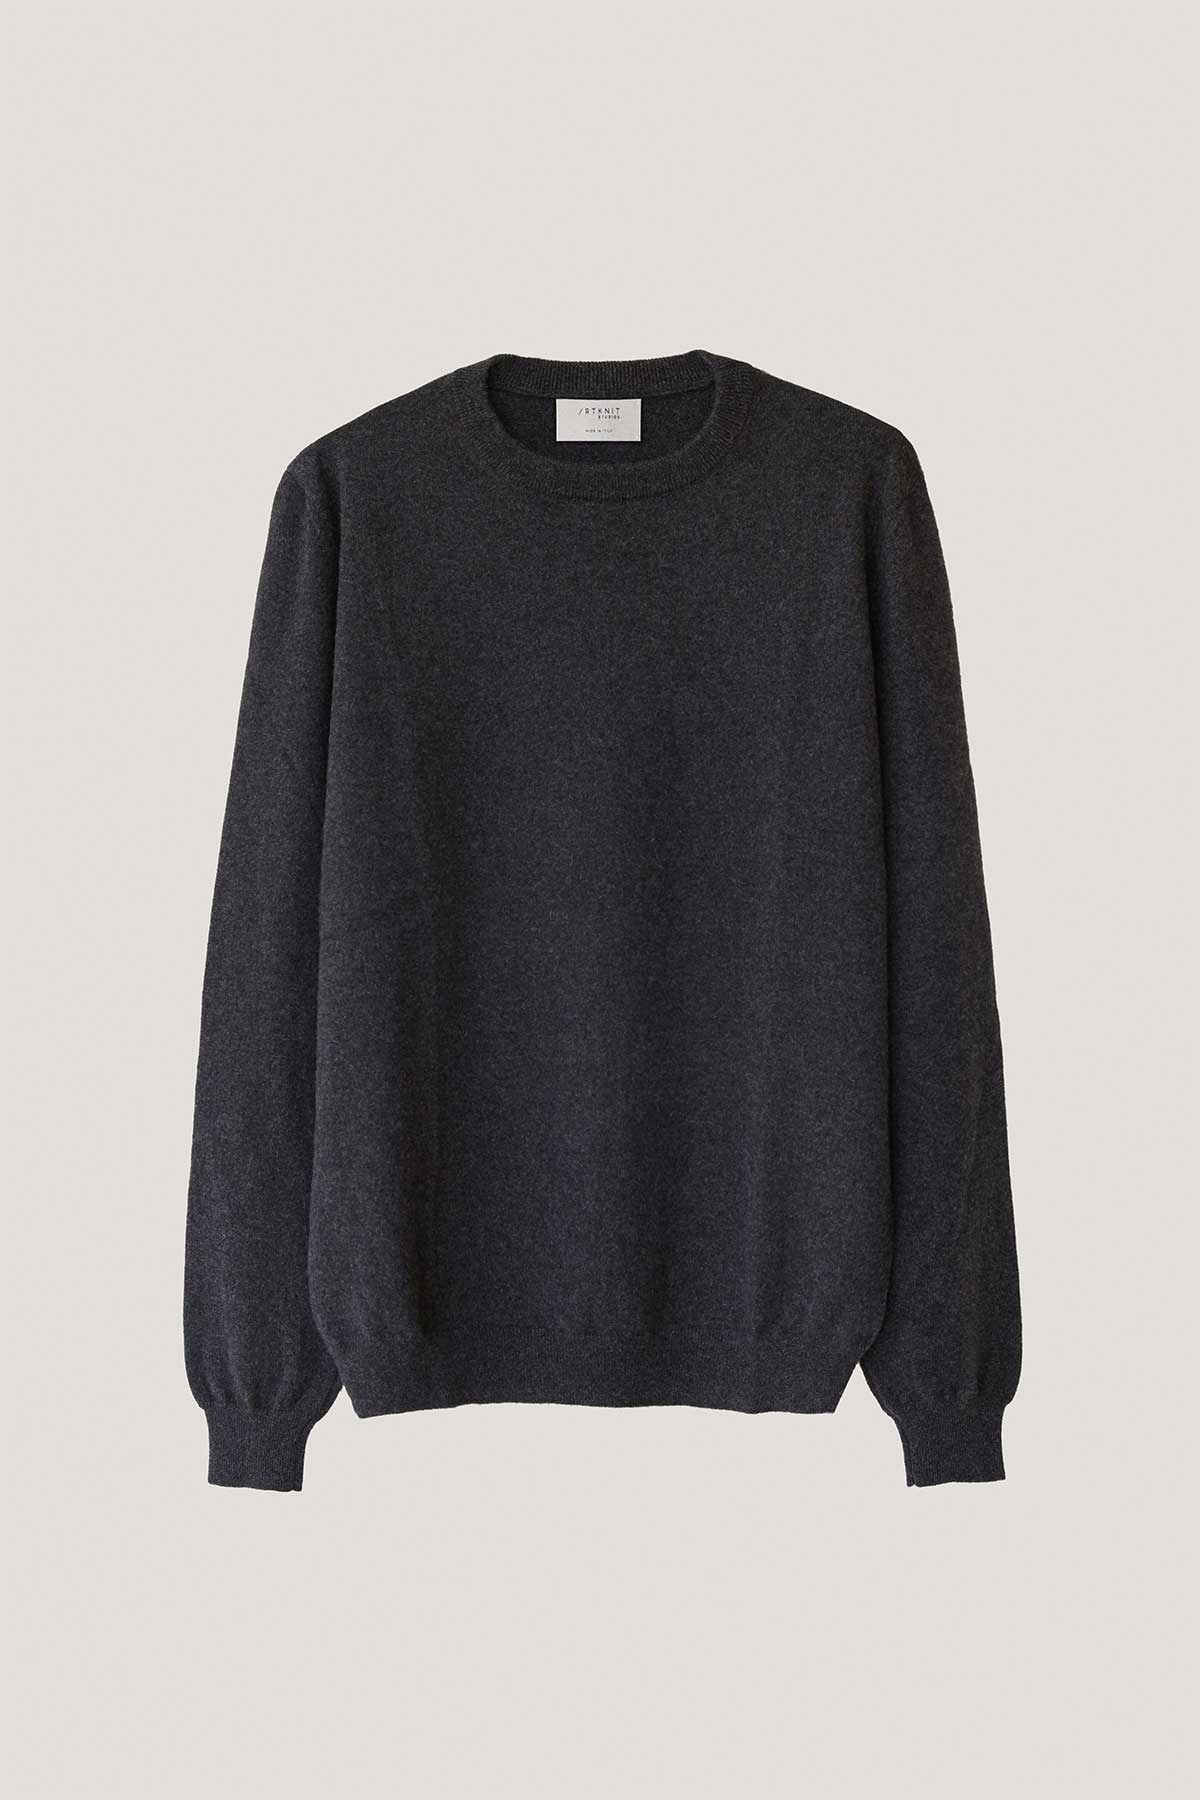 The Round-Neck Cashmere - Anthracite Grey